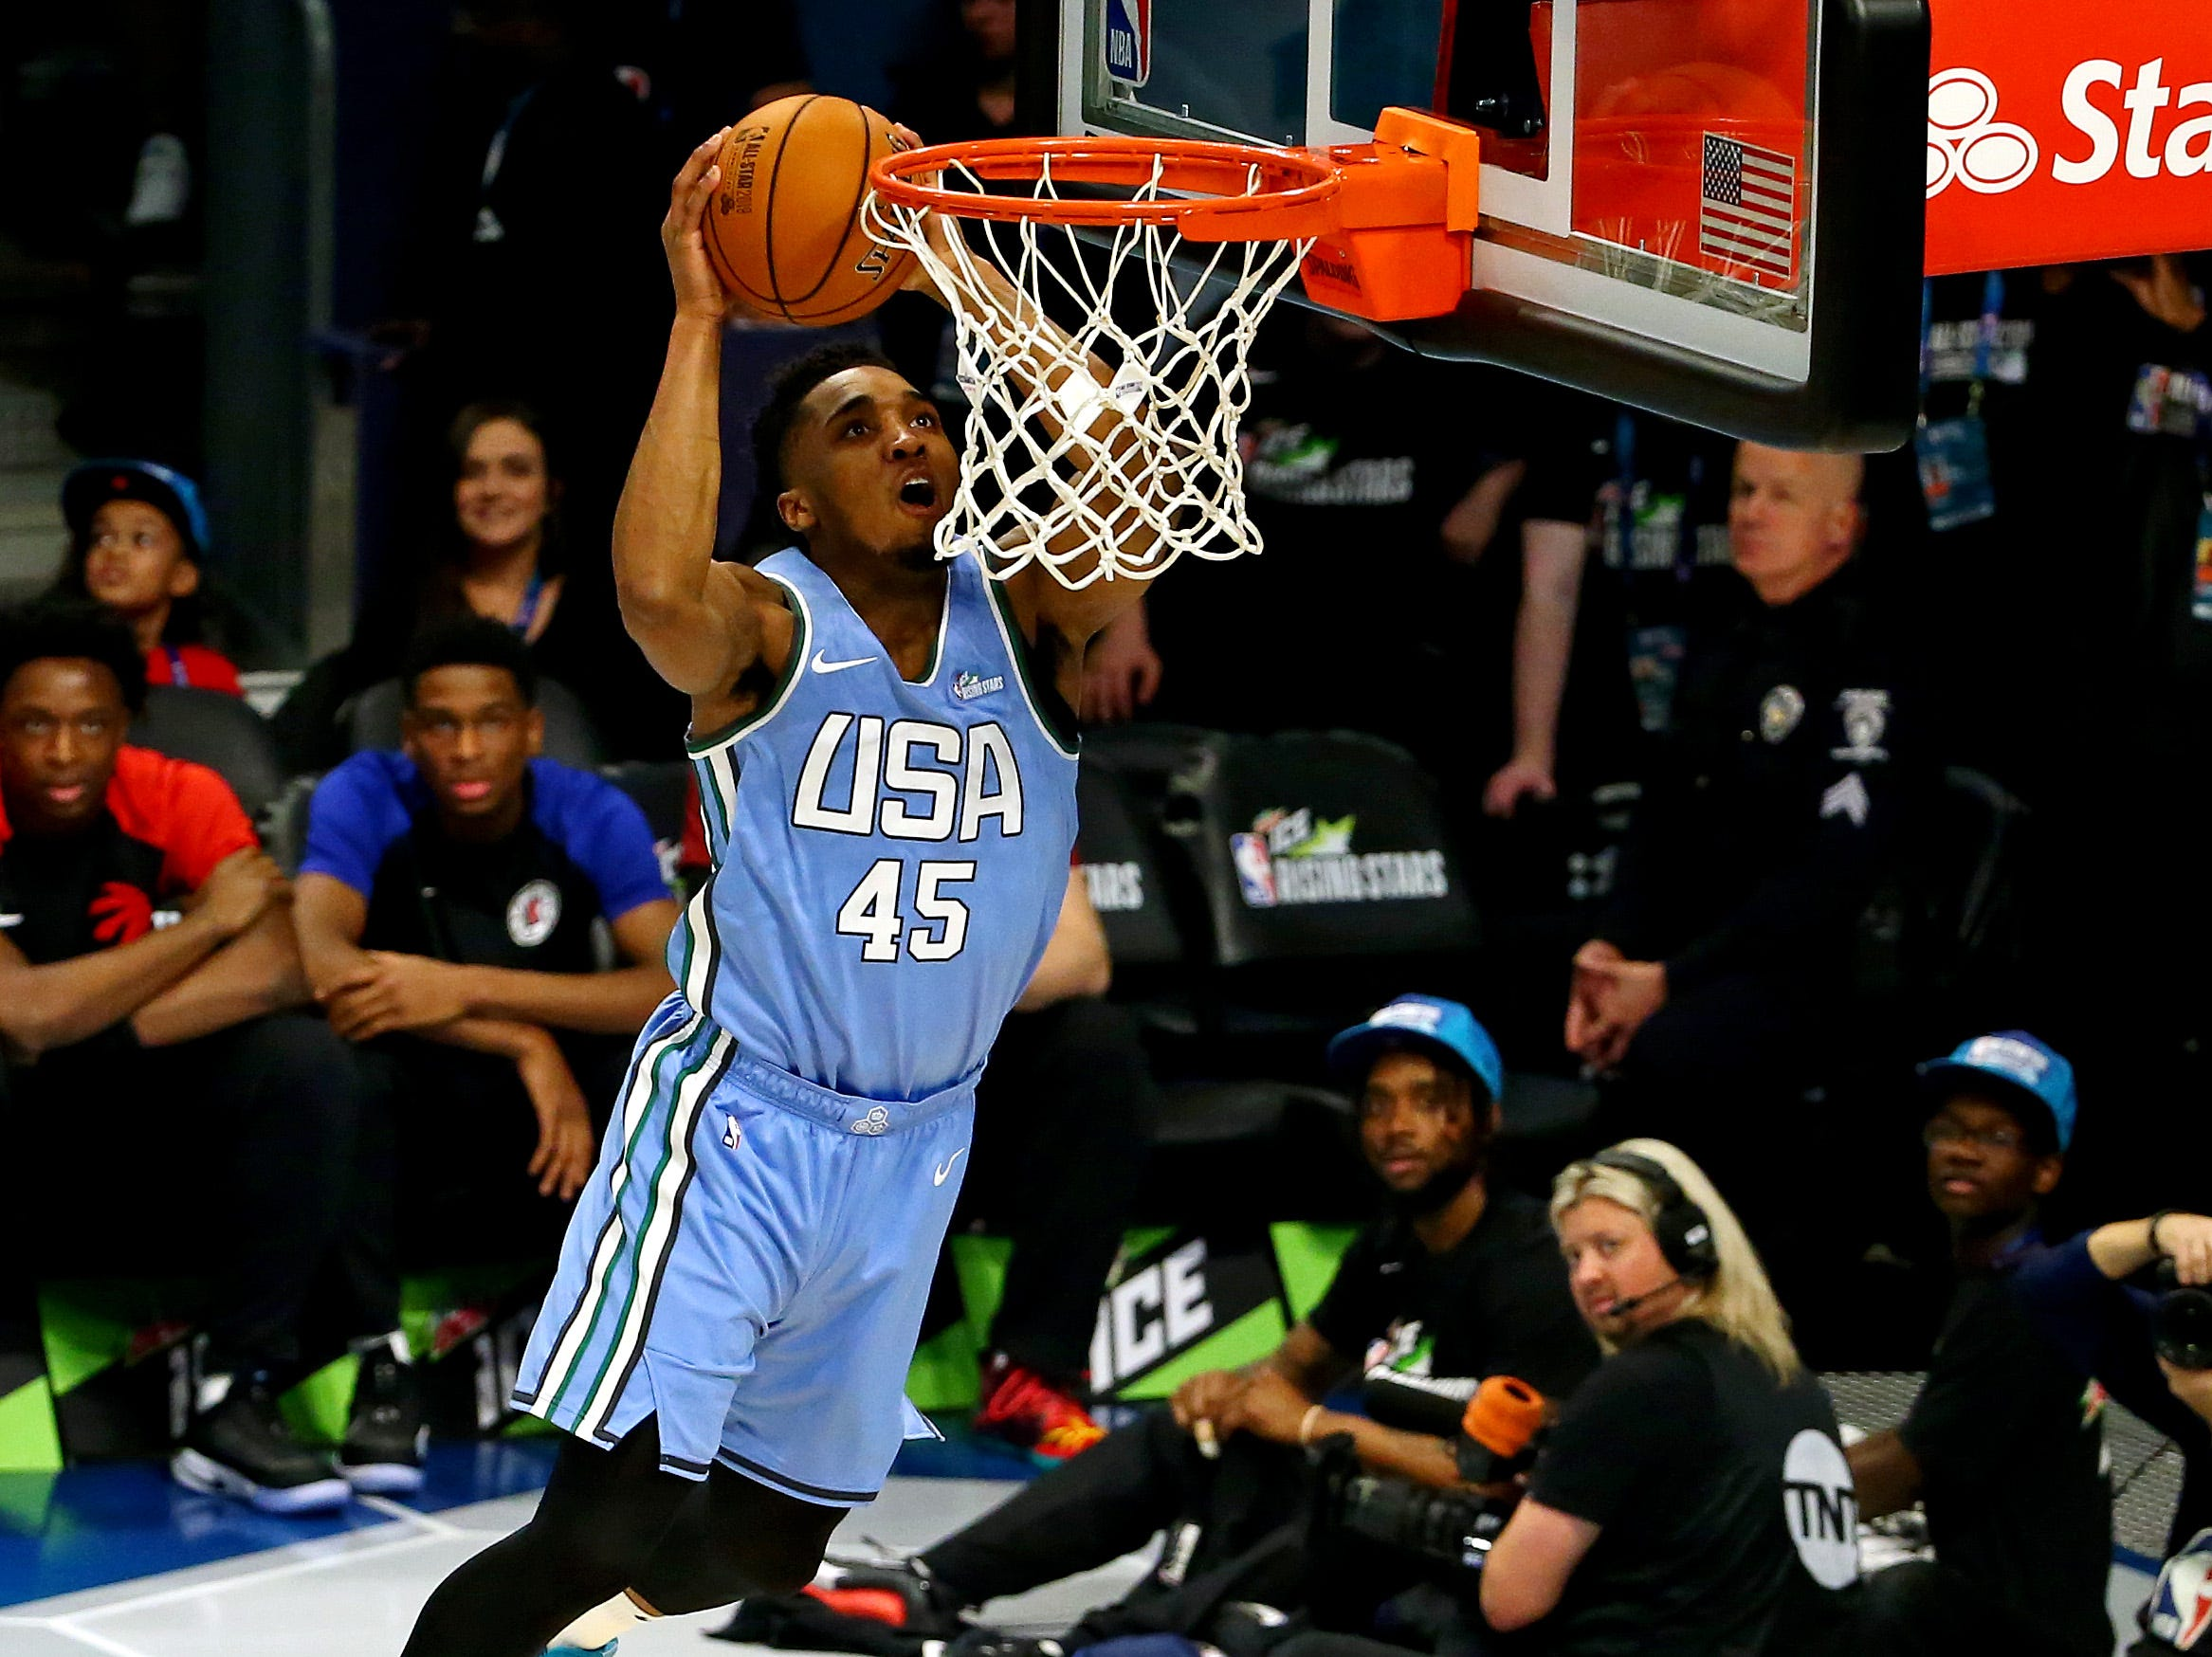 U.S. Team guard Donovan Mitchell of the Utah Jazz dunks the ball during the All-Star Rising Stars game.